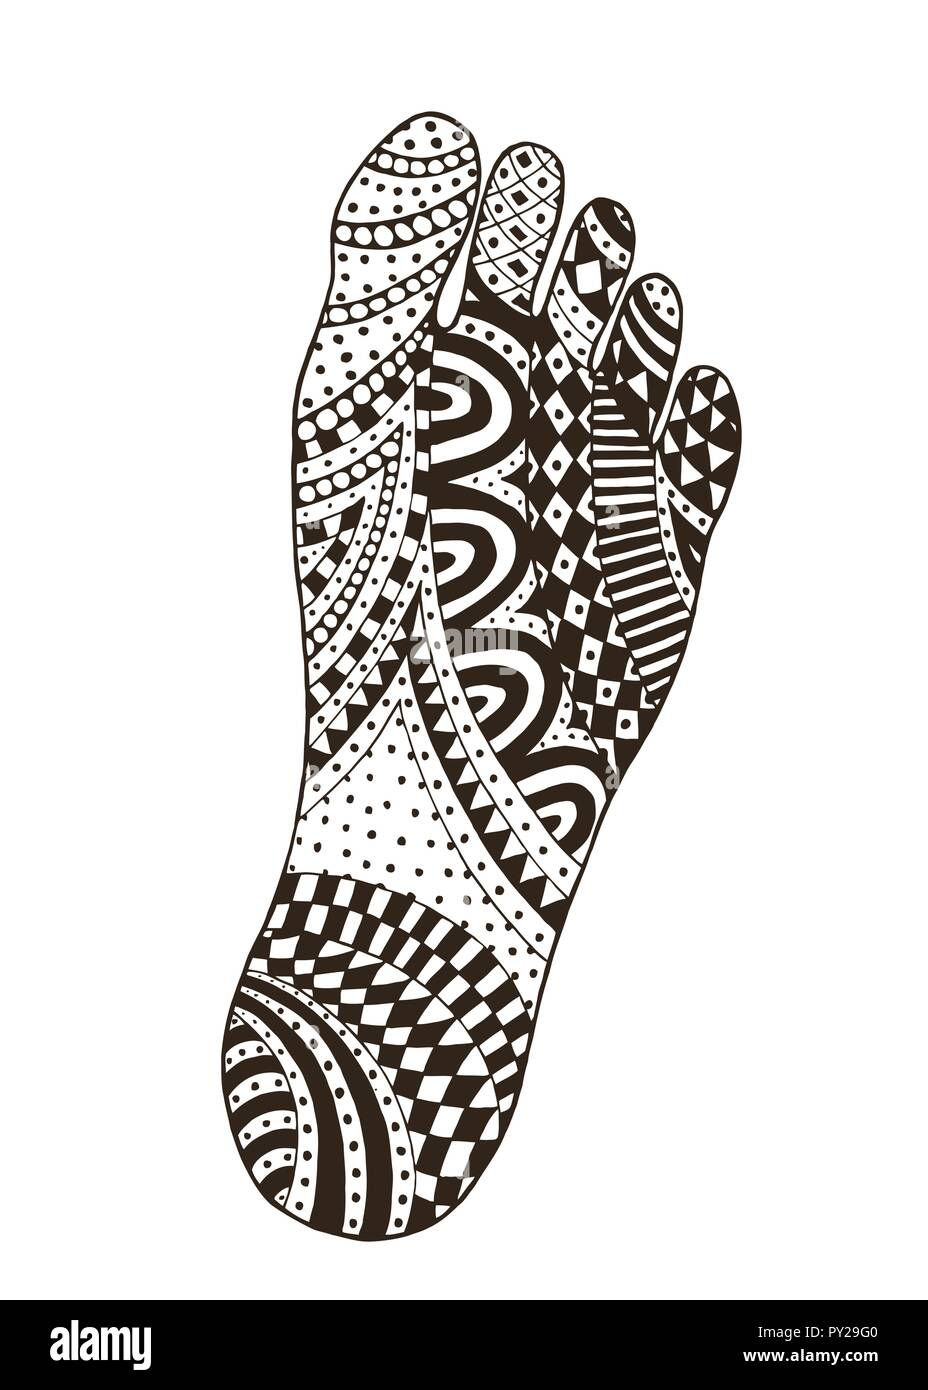 The imprint of the feet. Foot. Tangle pattern footprint illustration. Handmade sole. - Stock Vector